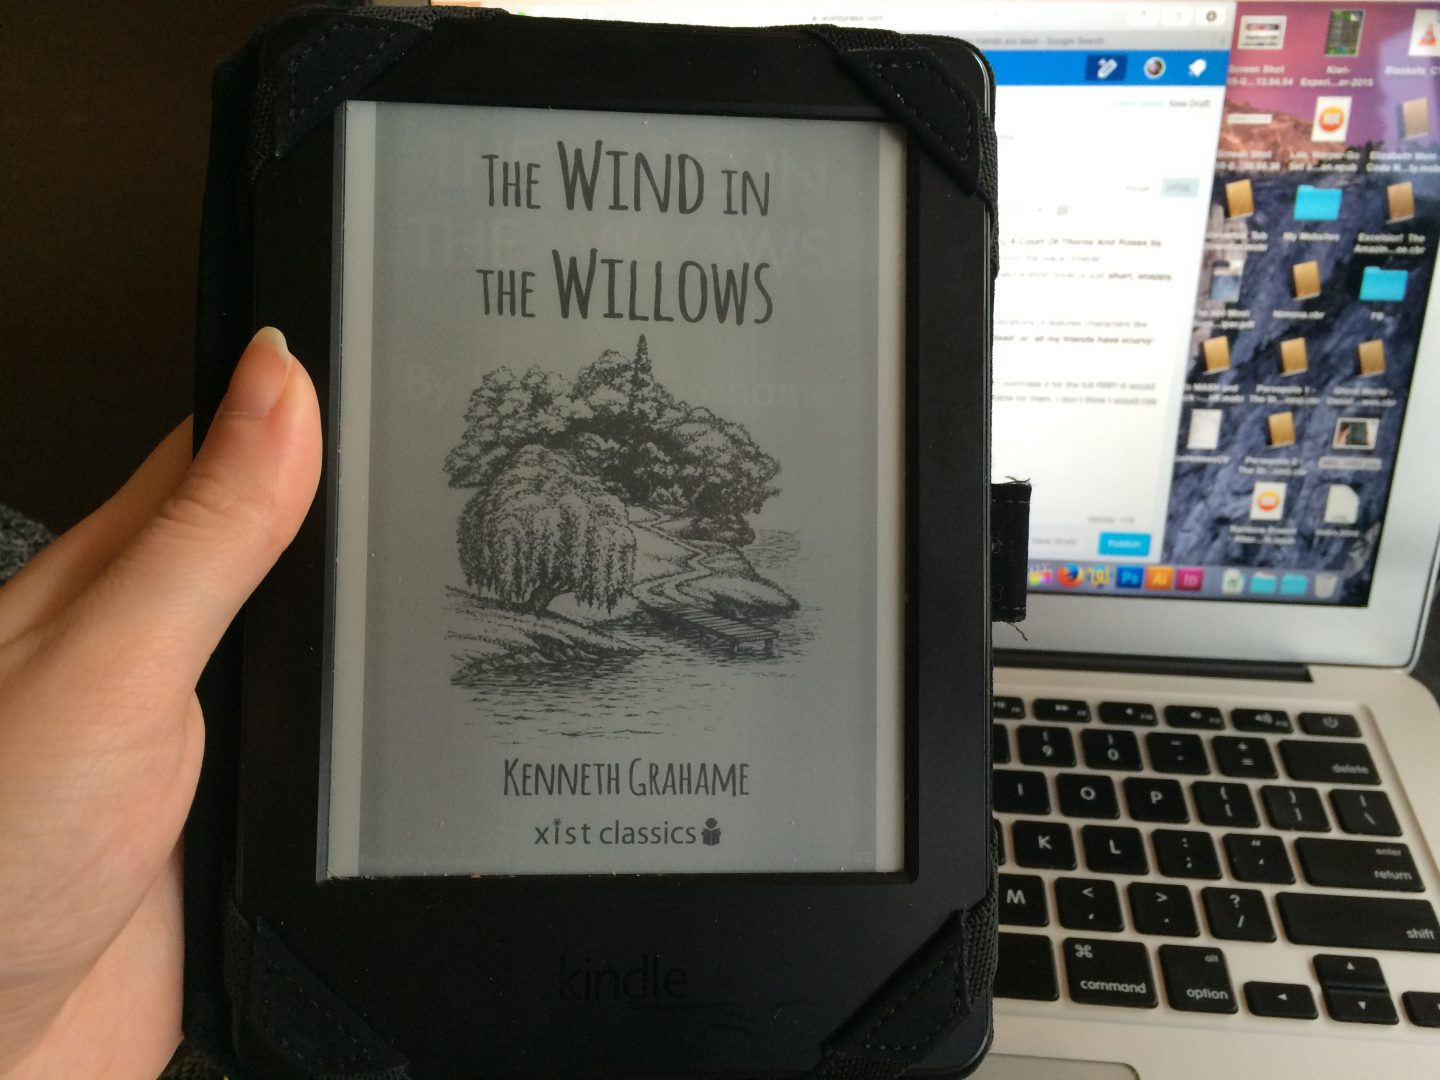 The Wind In The Willows by Kenneth Grahame Book Review